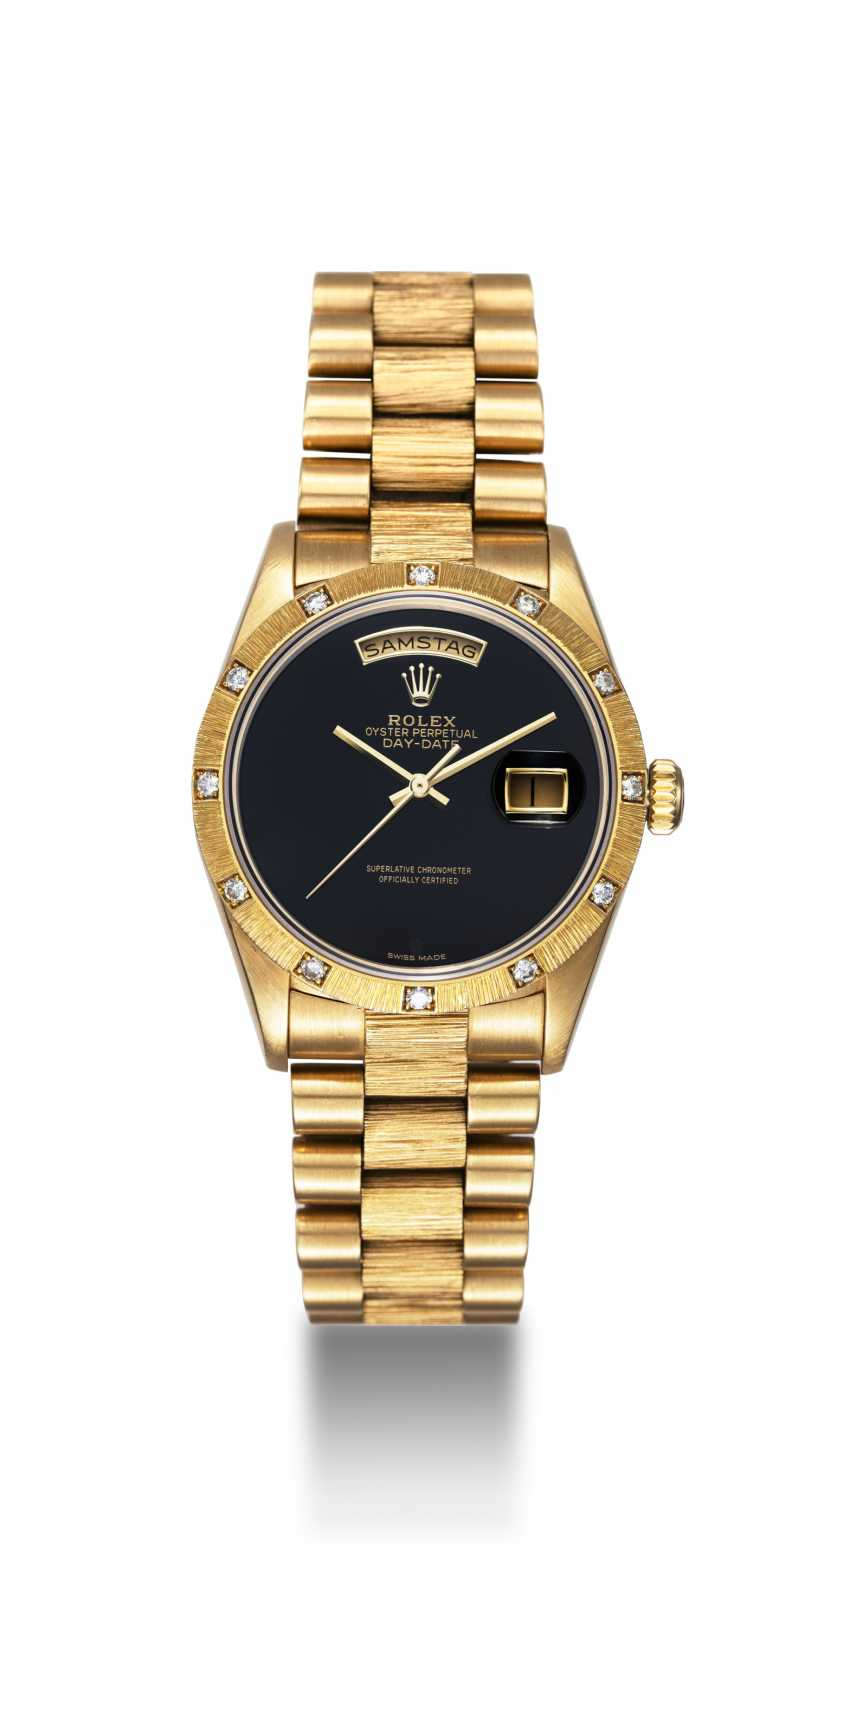 ROLEX, A GOLD OYSTER PERPETUAL DAY-DATE WITH DIAMOND BEZEL AND ONYX DIAL, REF. 18108 - photo 3